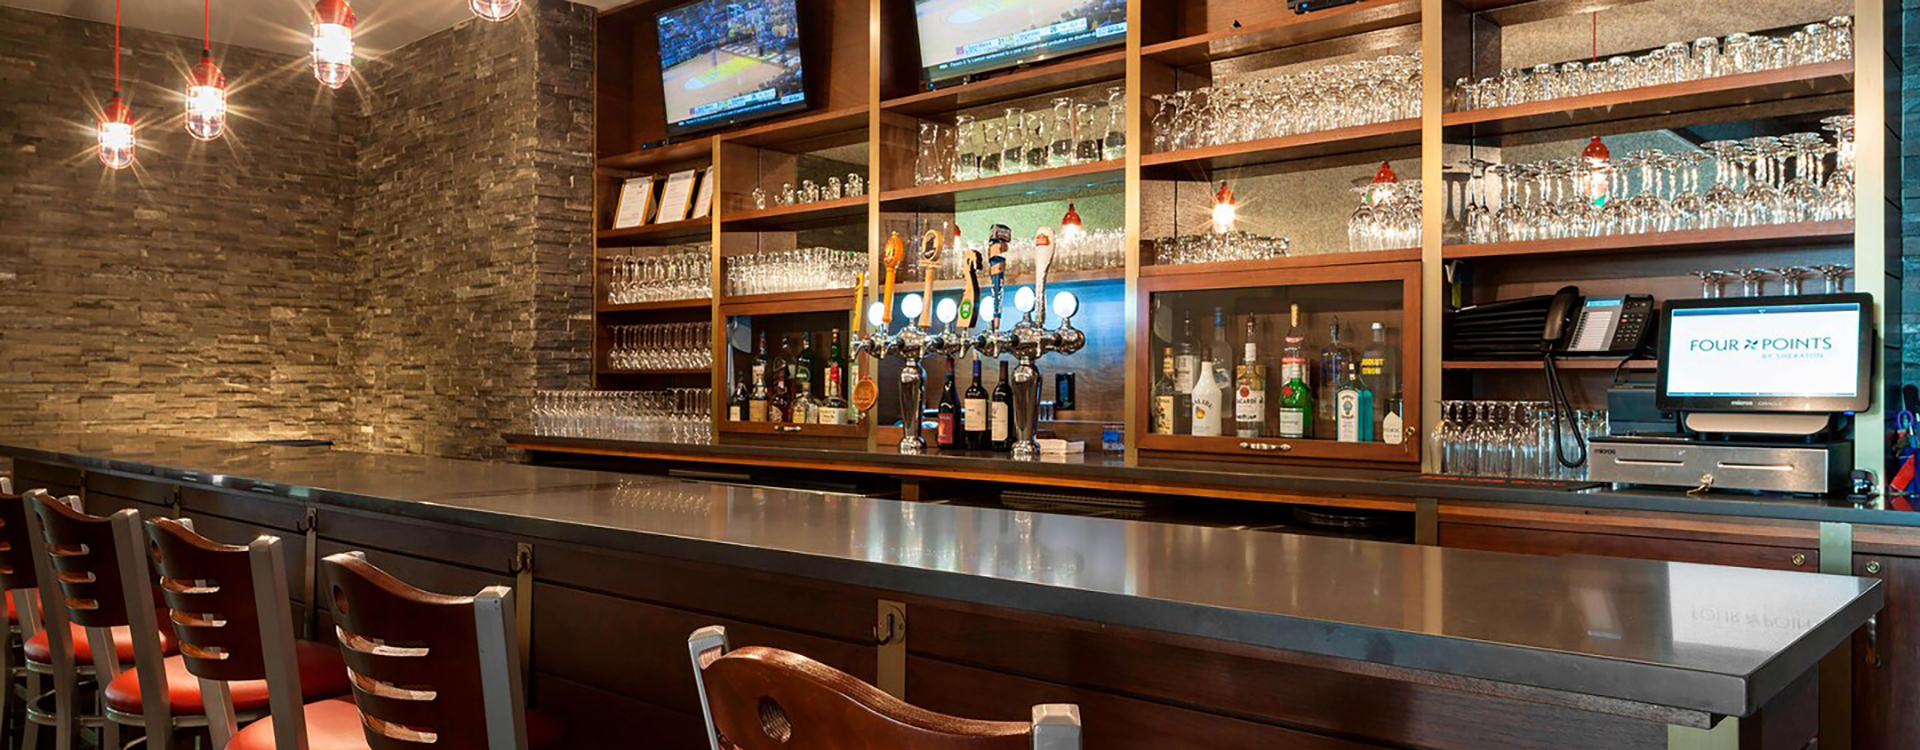 The Olympus Grille